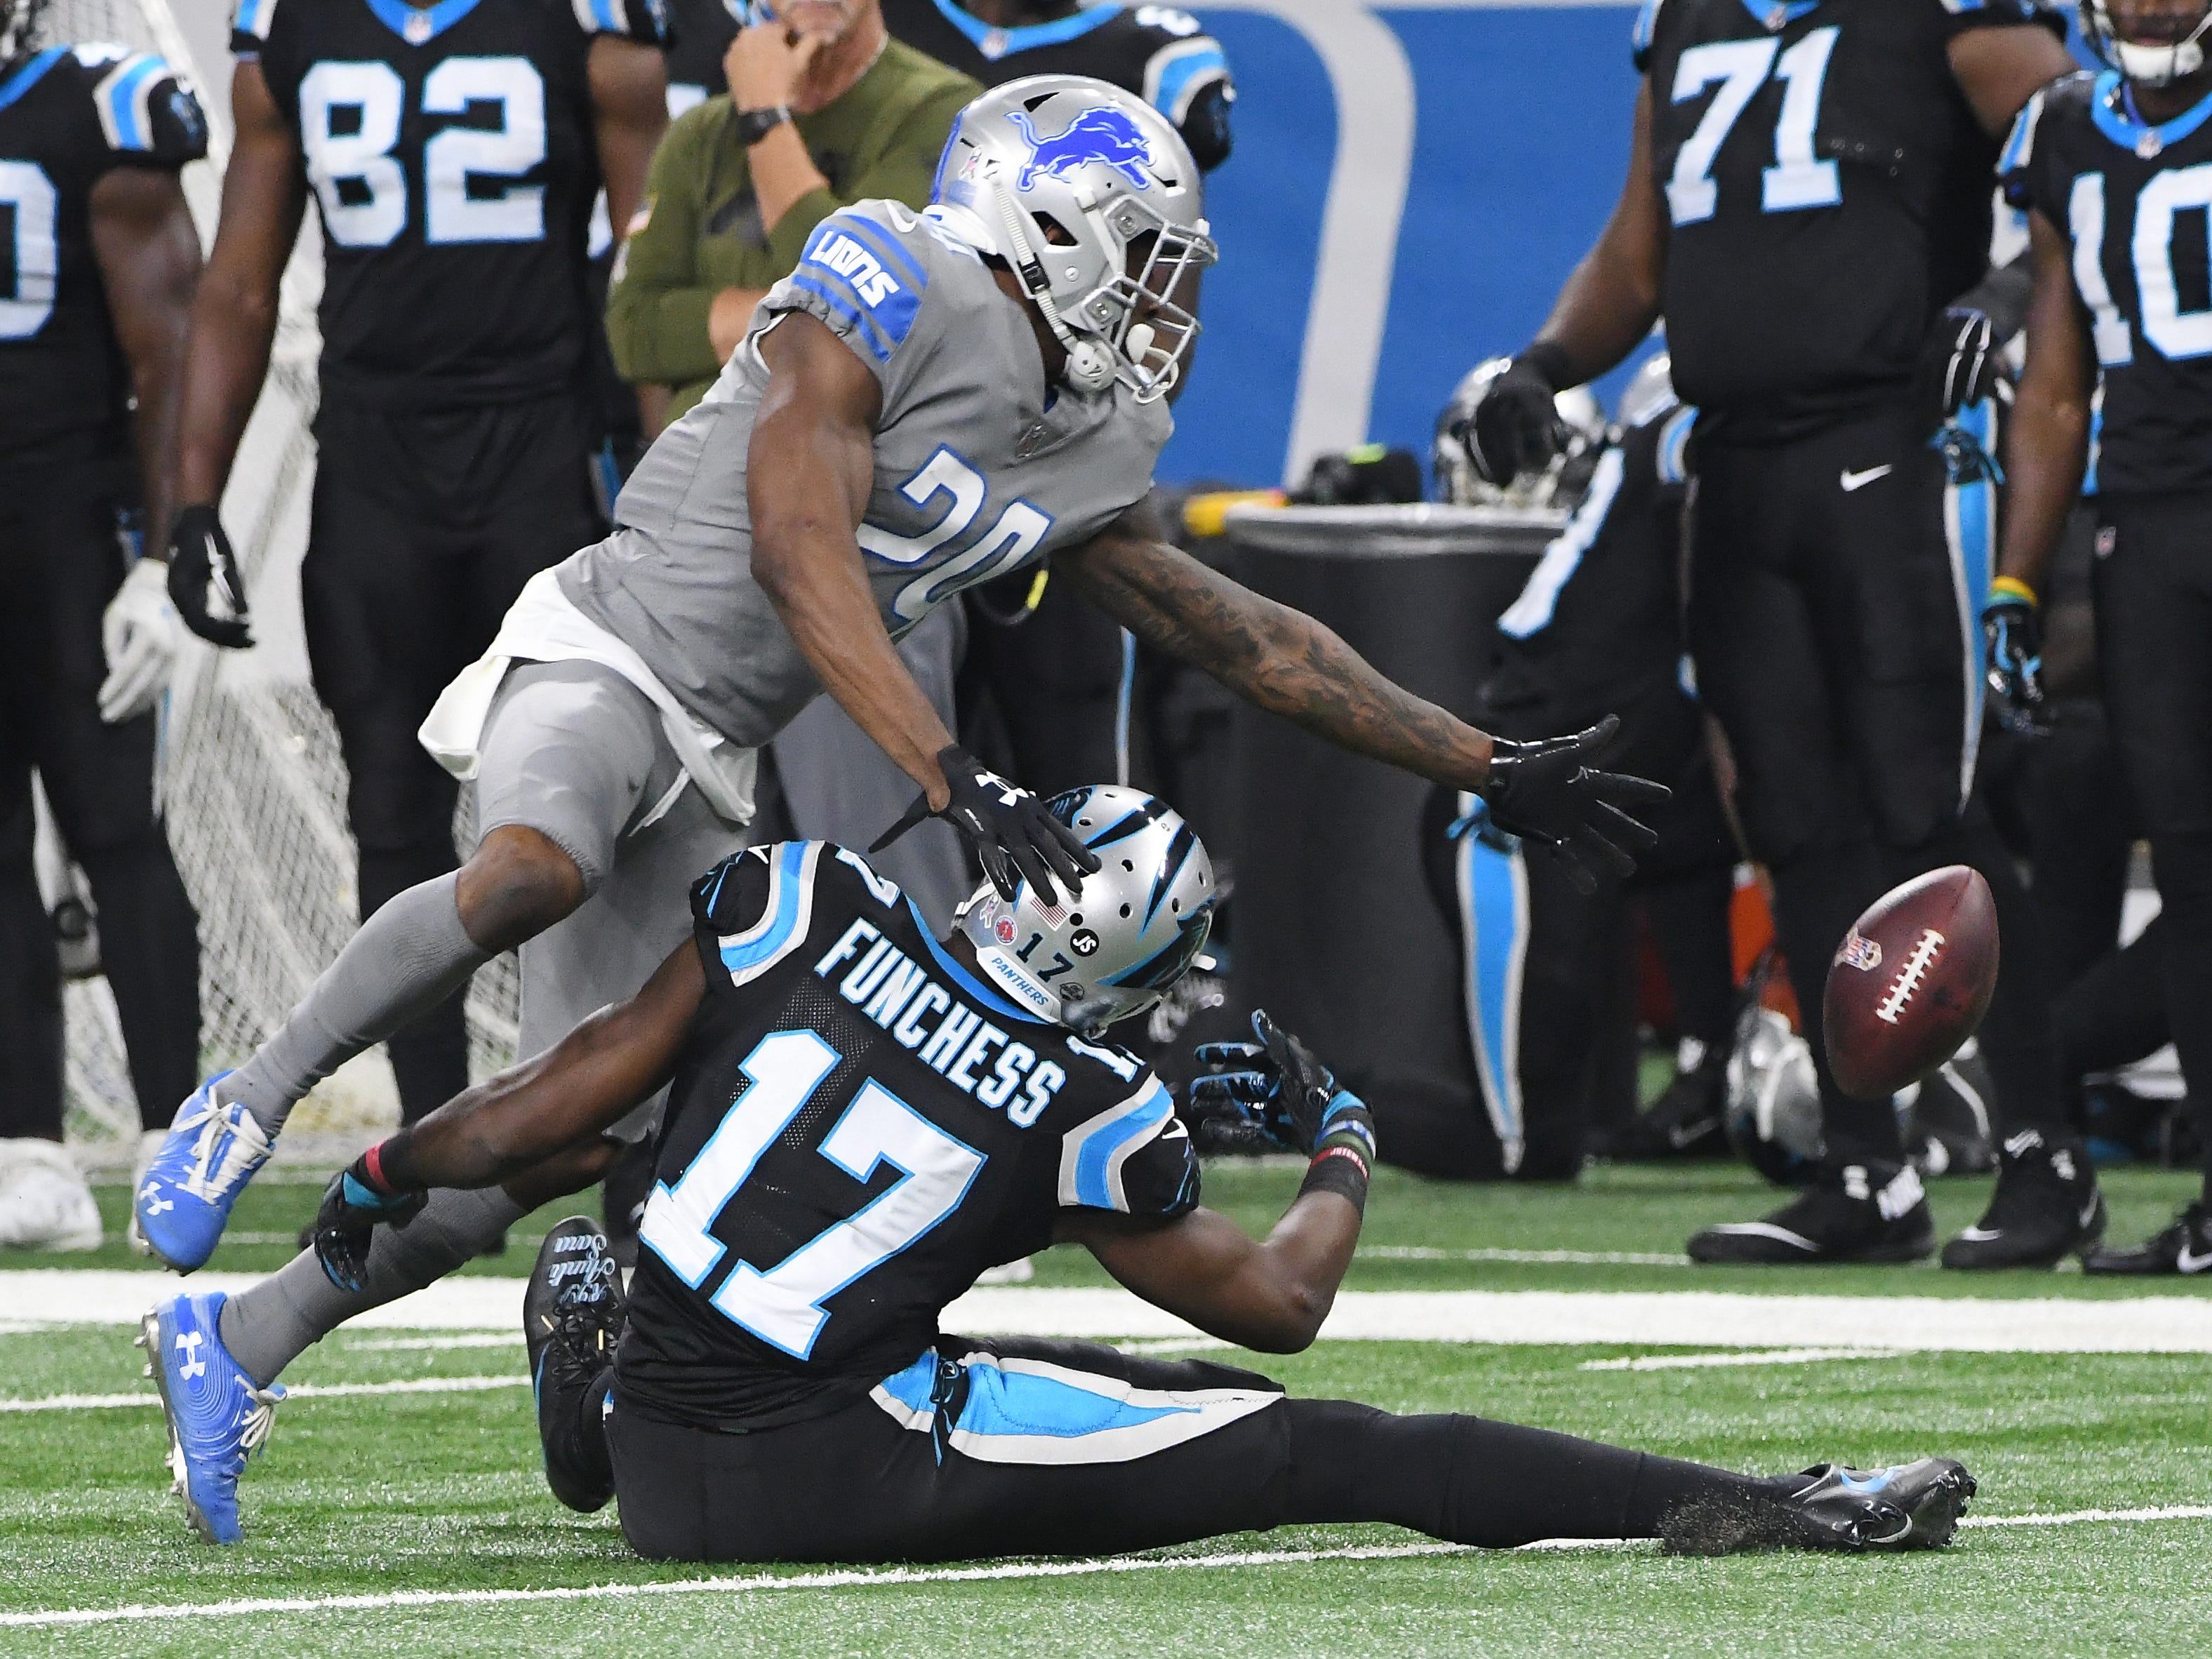 Lions' Nevin Lawson tries to grab an interception on a bobbled pass to Panthers' Devin Funchess  in the second quarter.